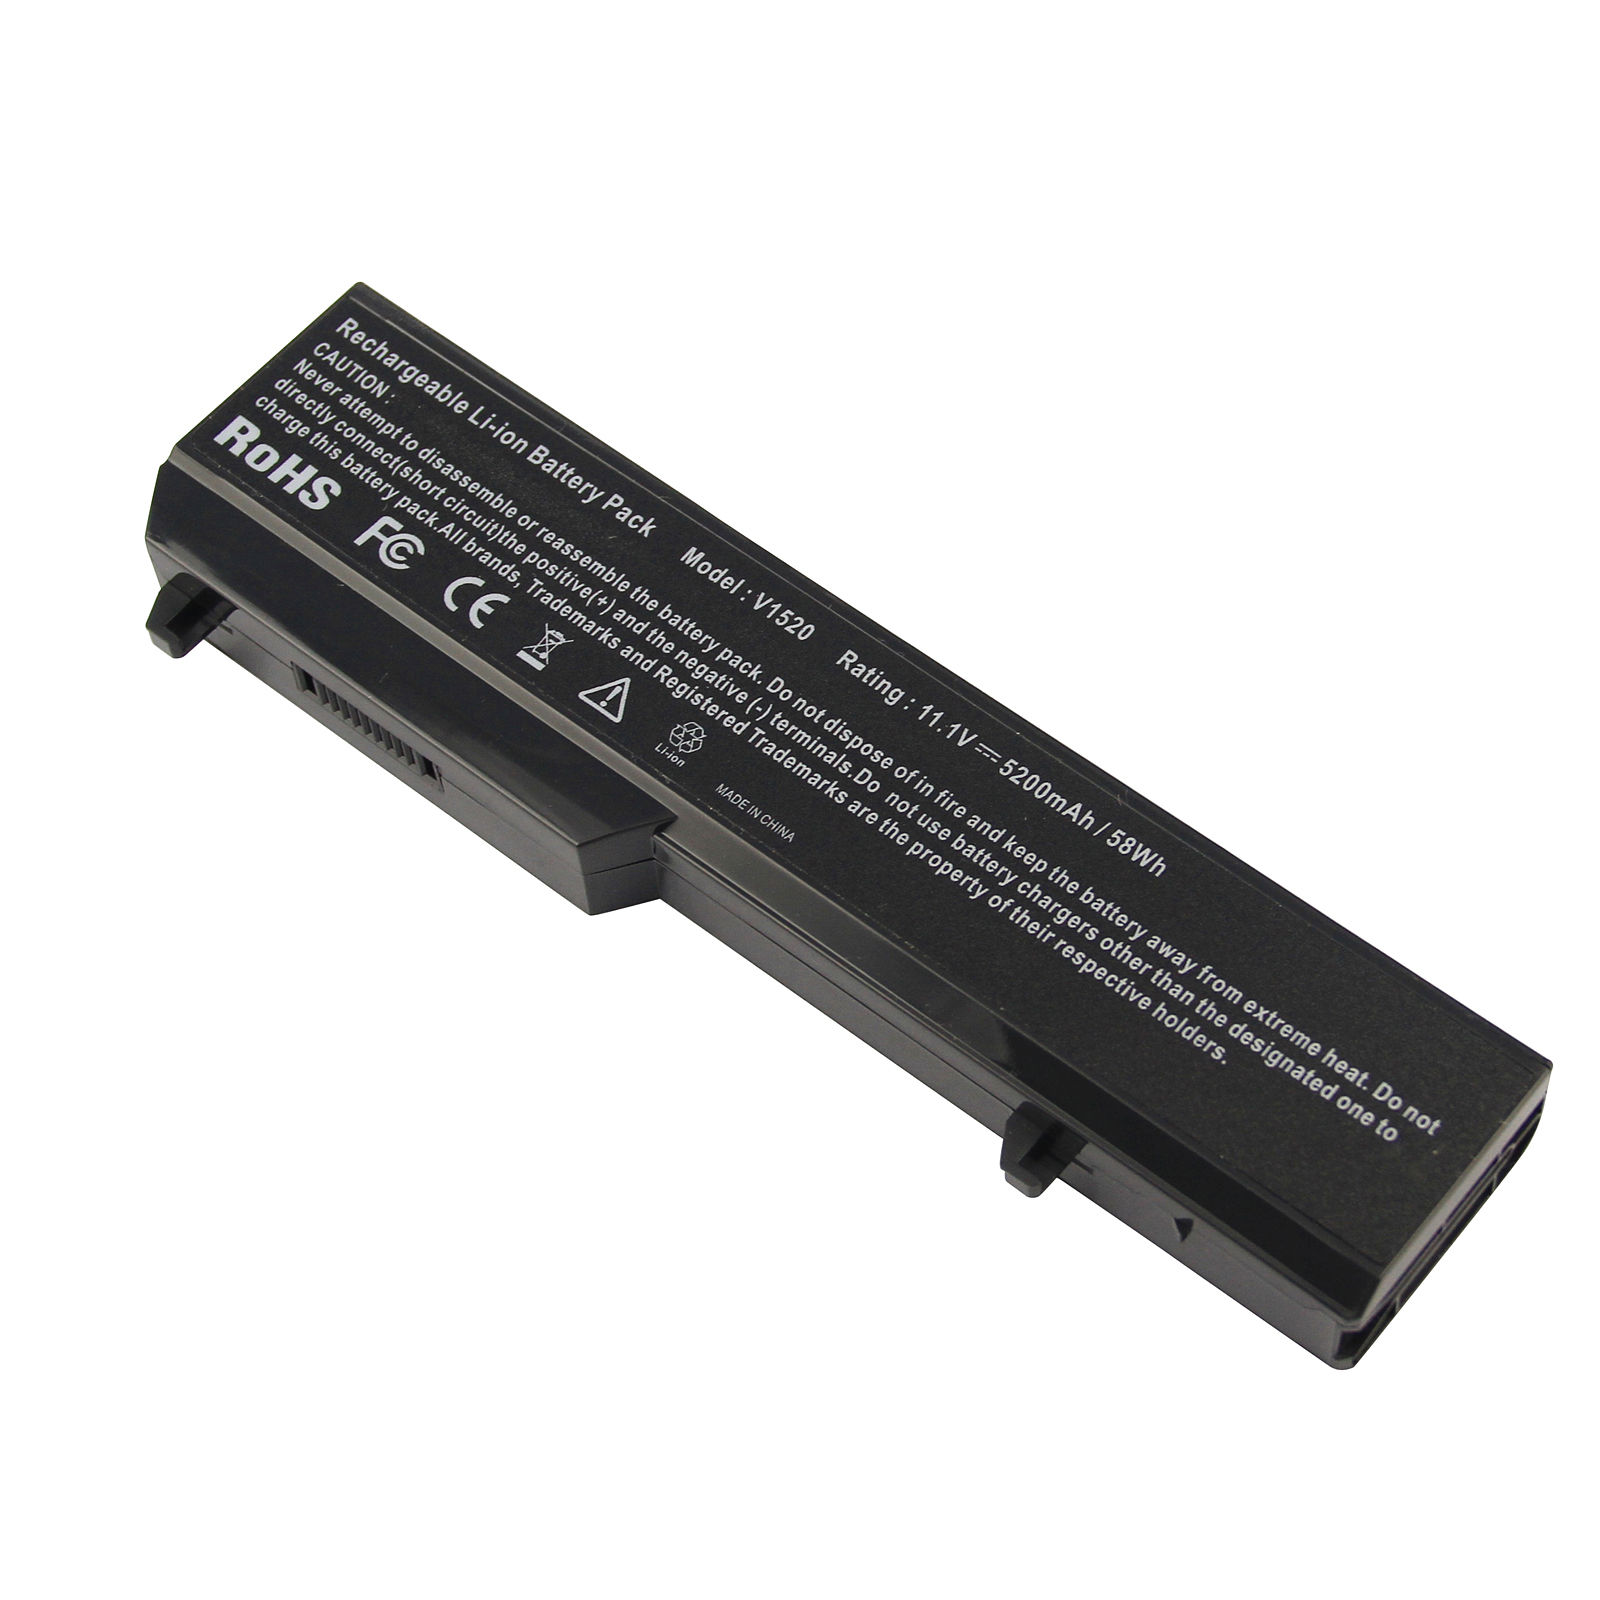 Replacement Dell Vostro 1310 Battery